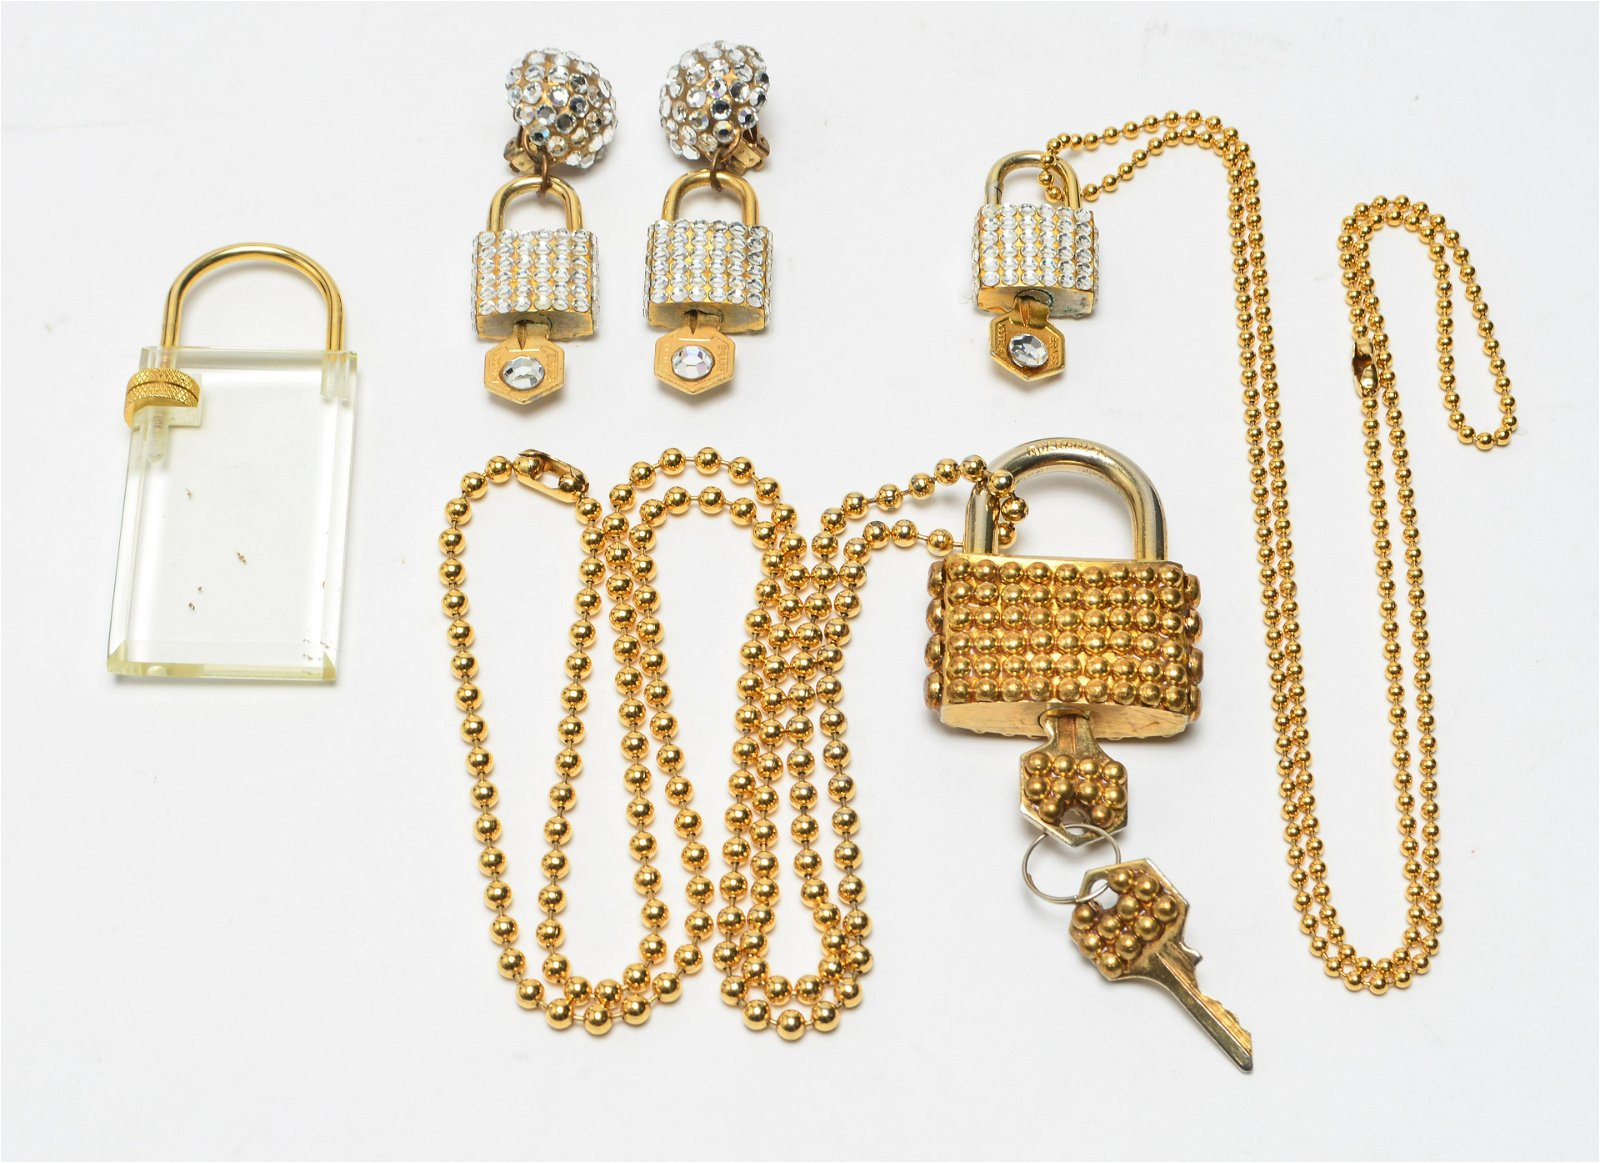 Gold-Tone Lock & Key Jewelry w Faceted Crystals, 4